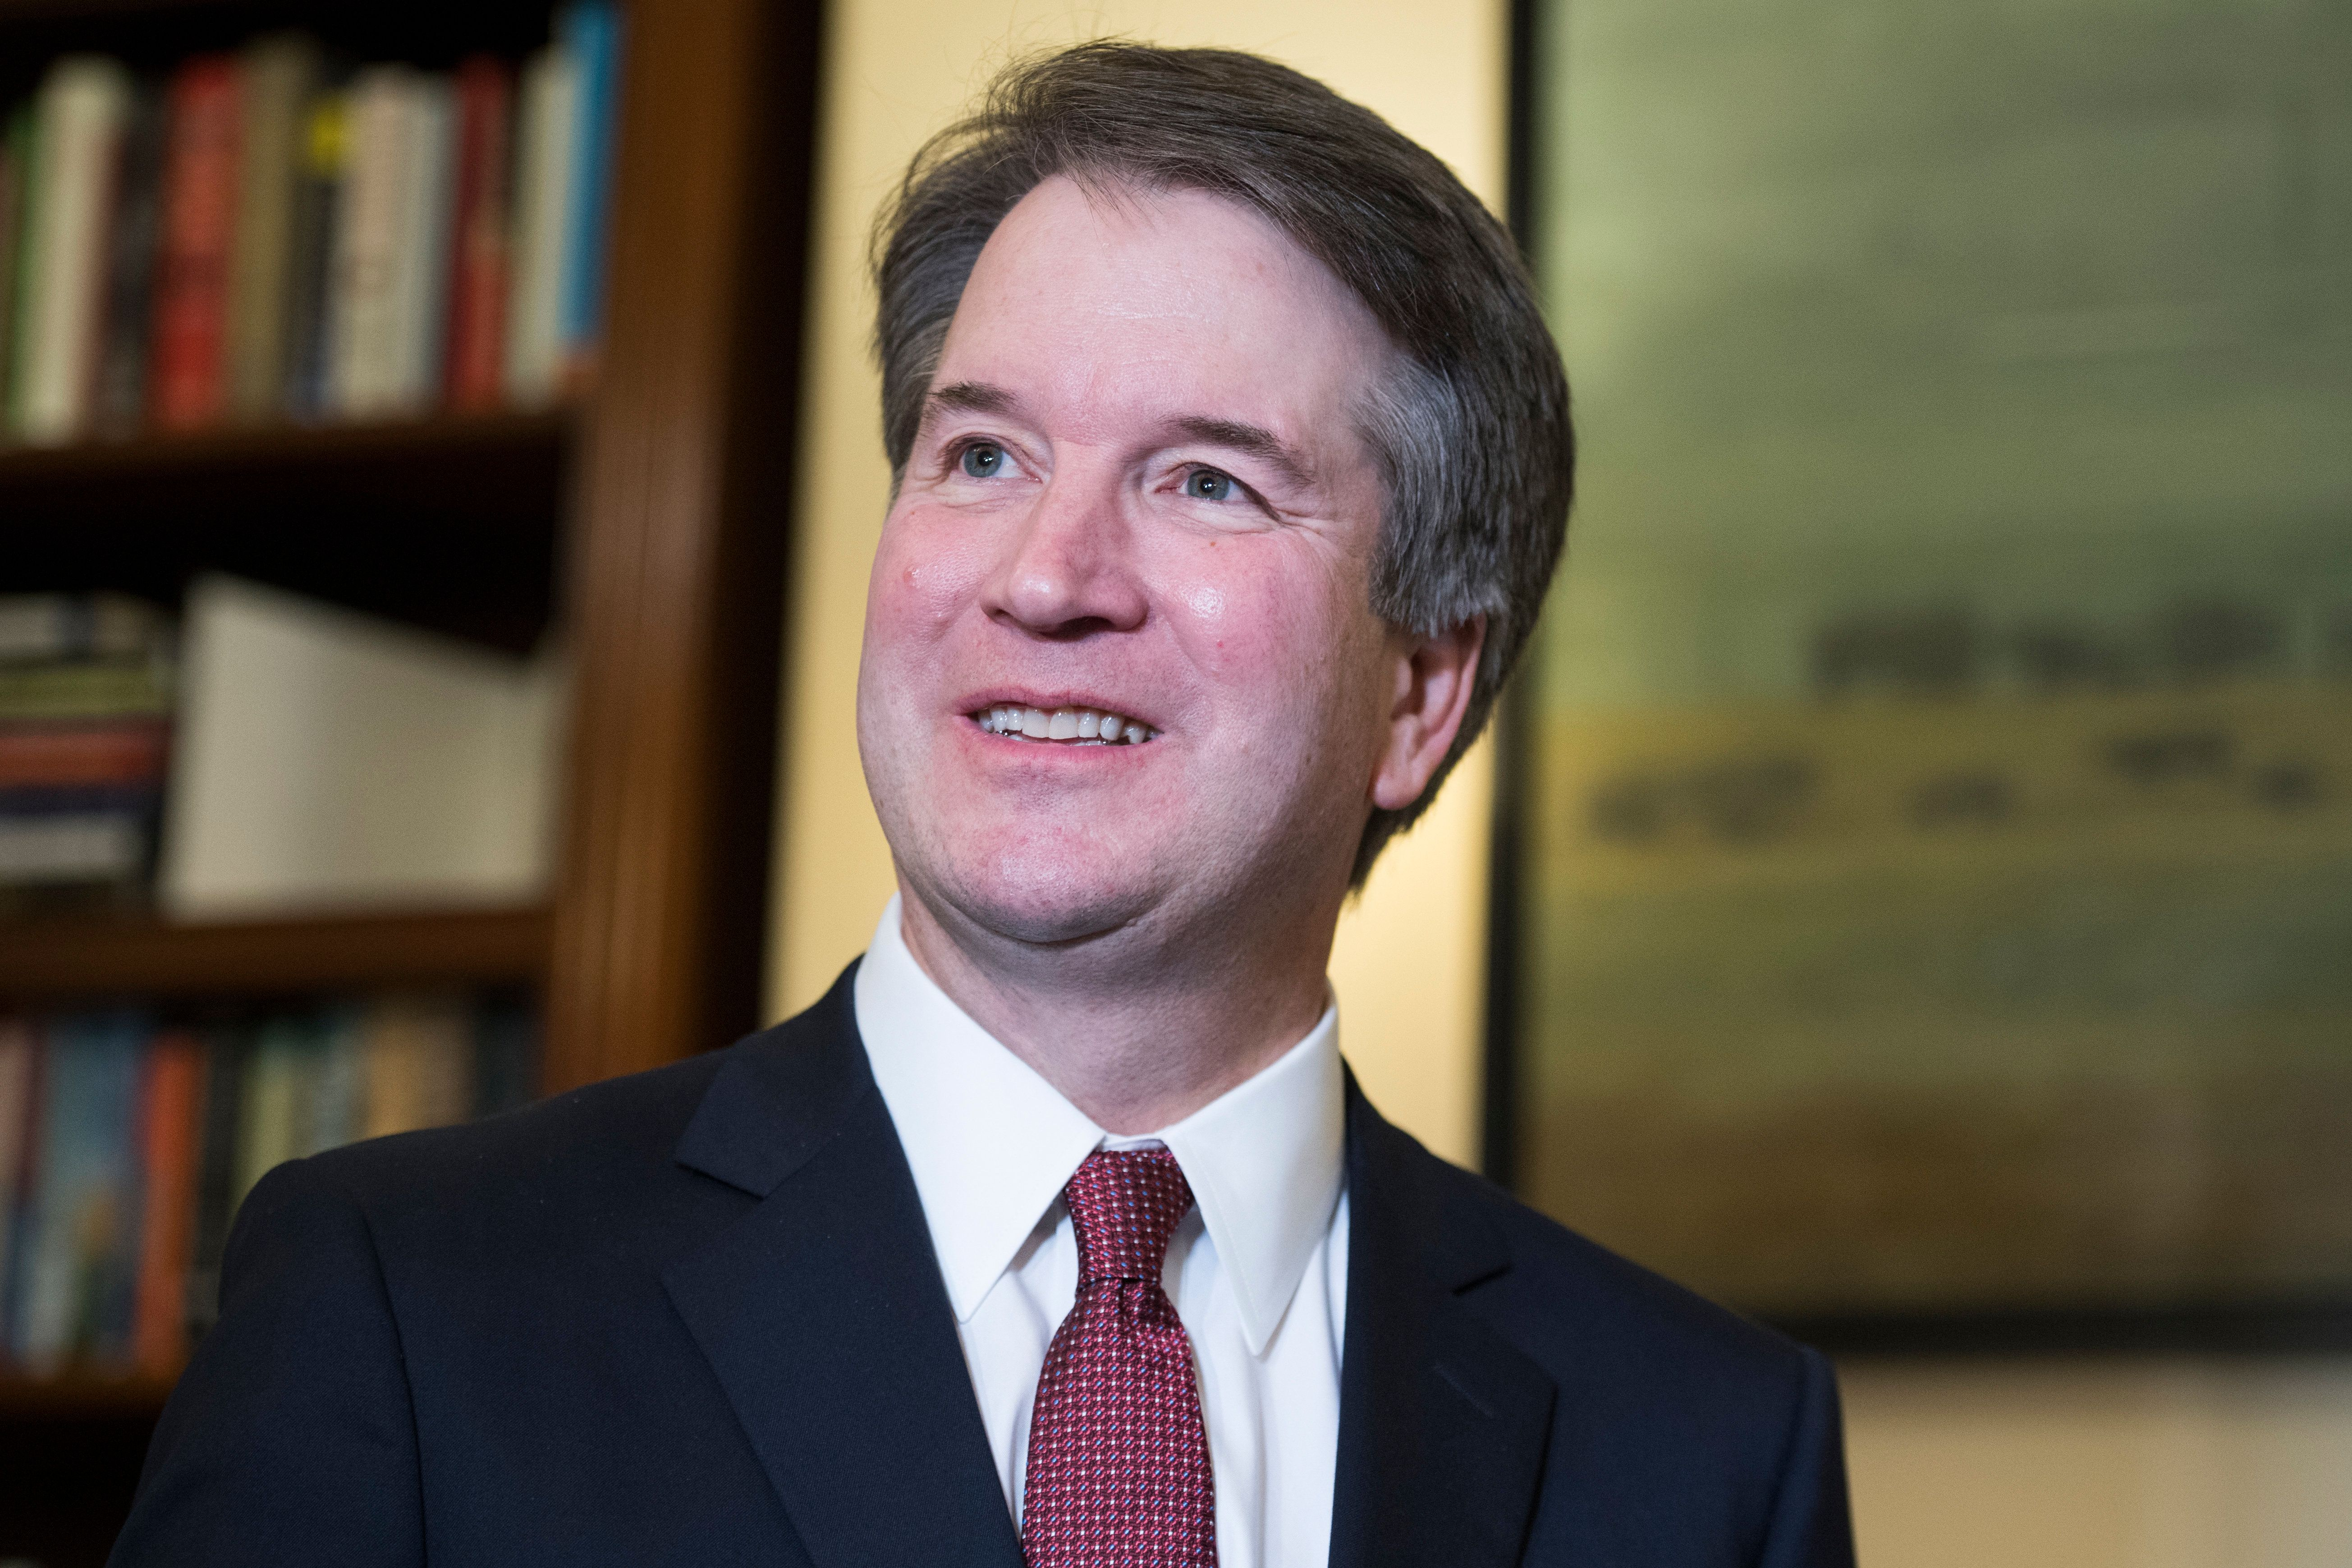 Where does Brett Kavanaugh stand on key issues?